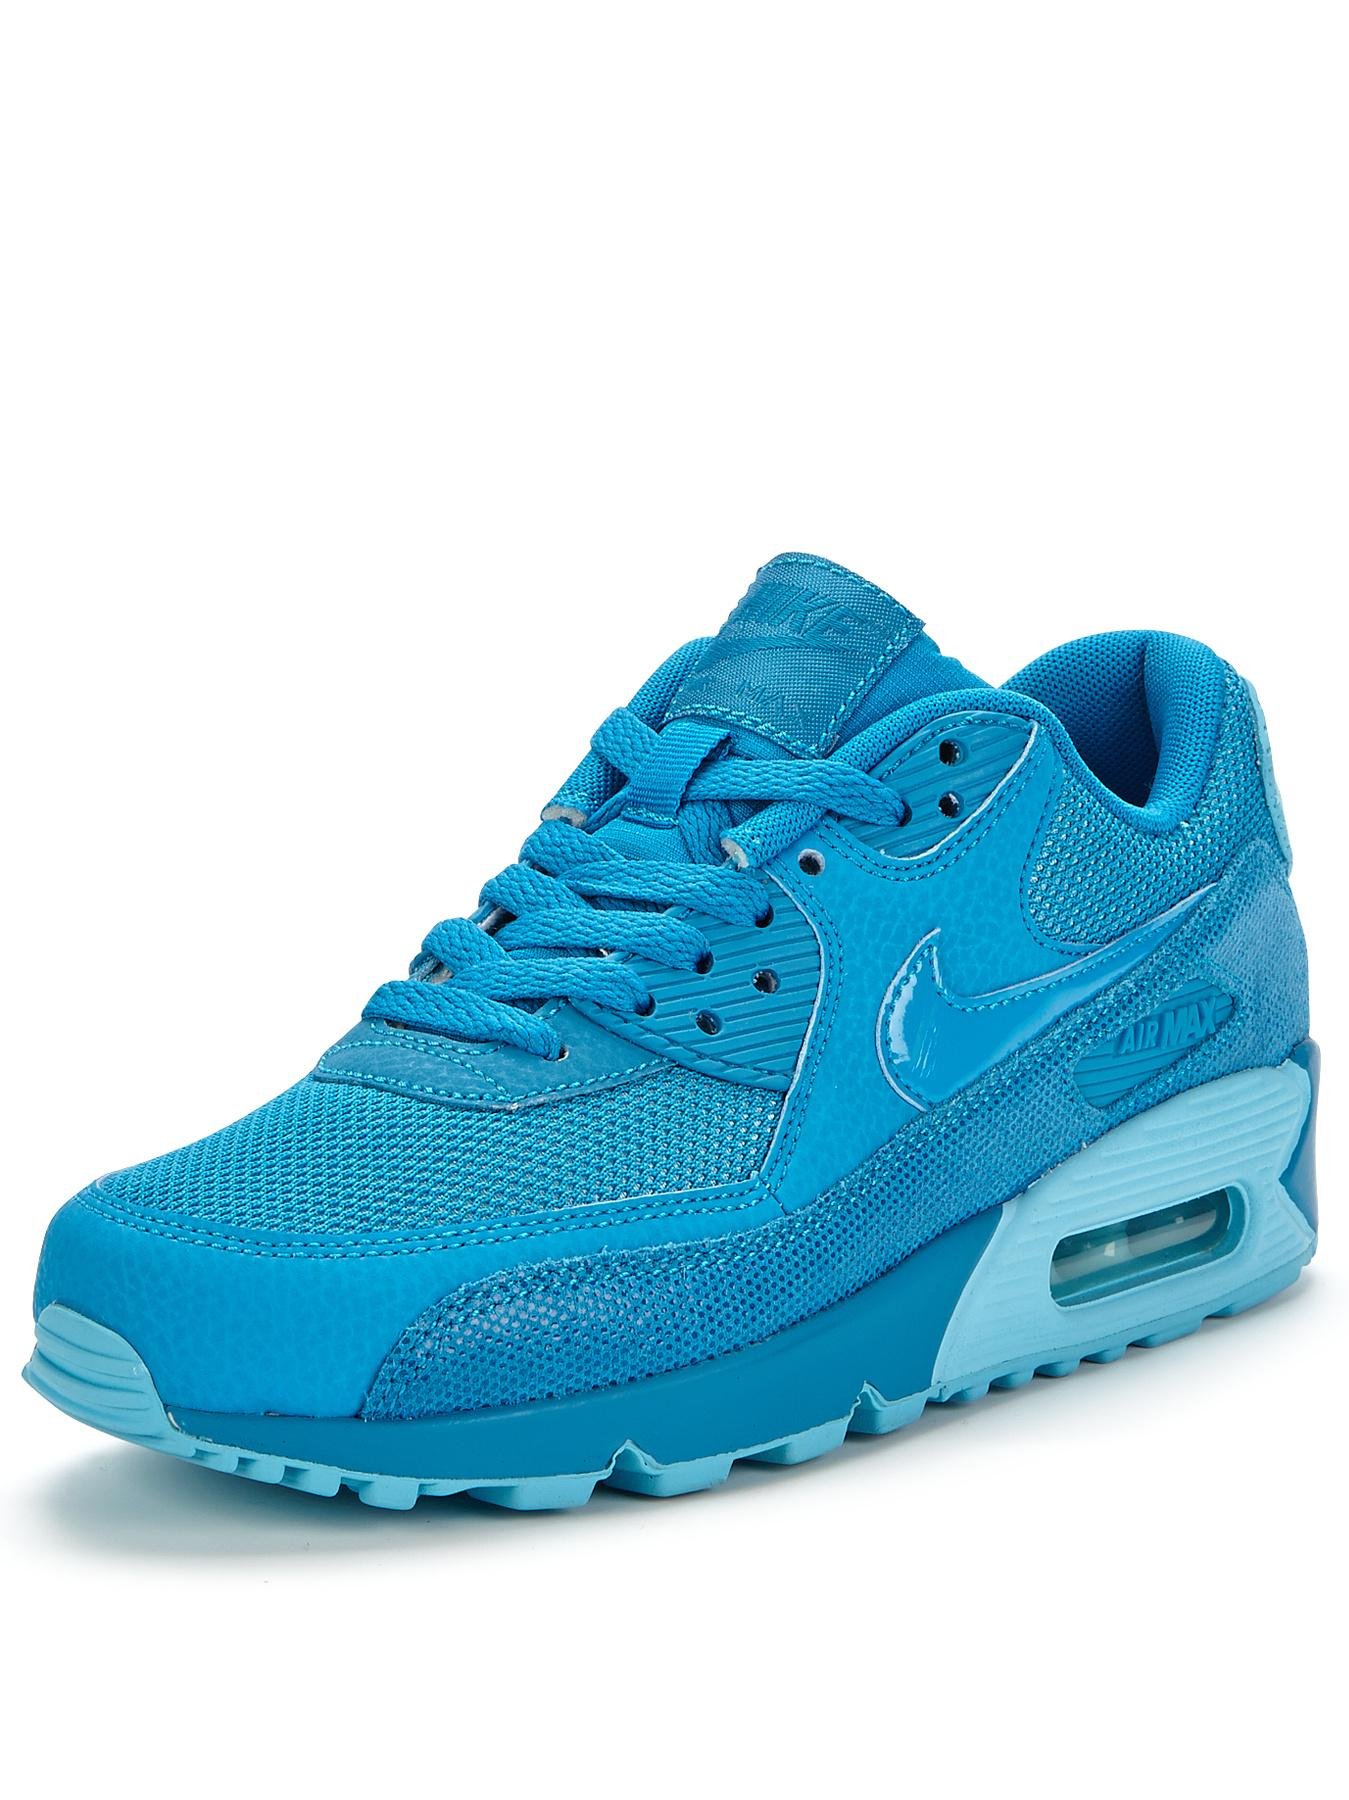 Nike Air Max 90 Premium Trainers - Blue, Blue